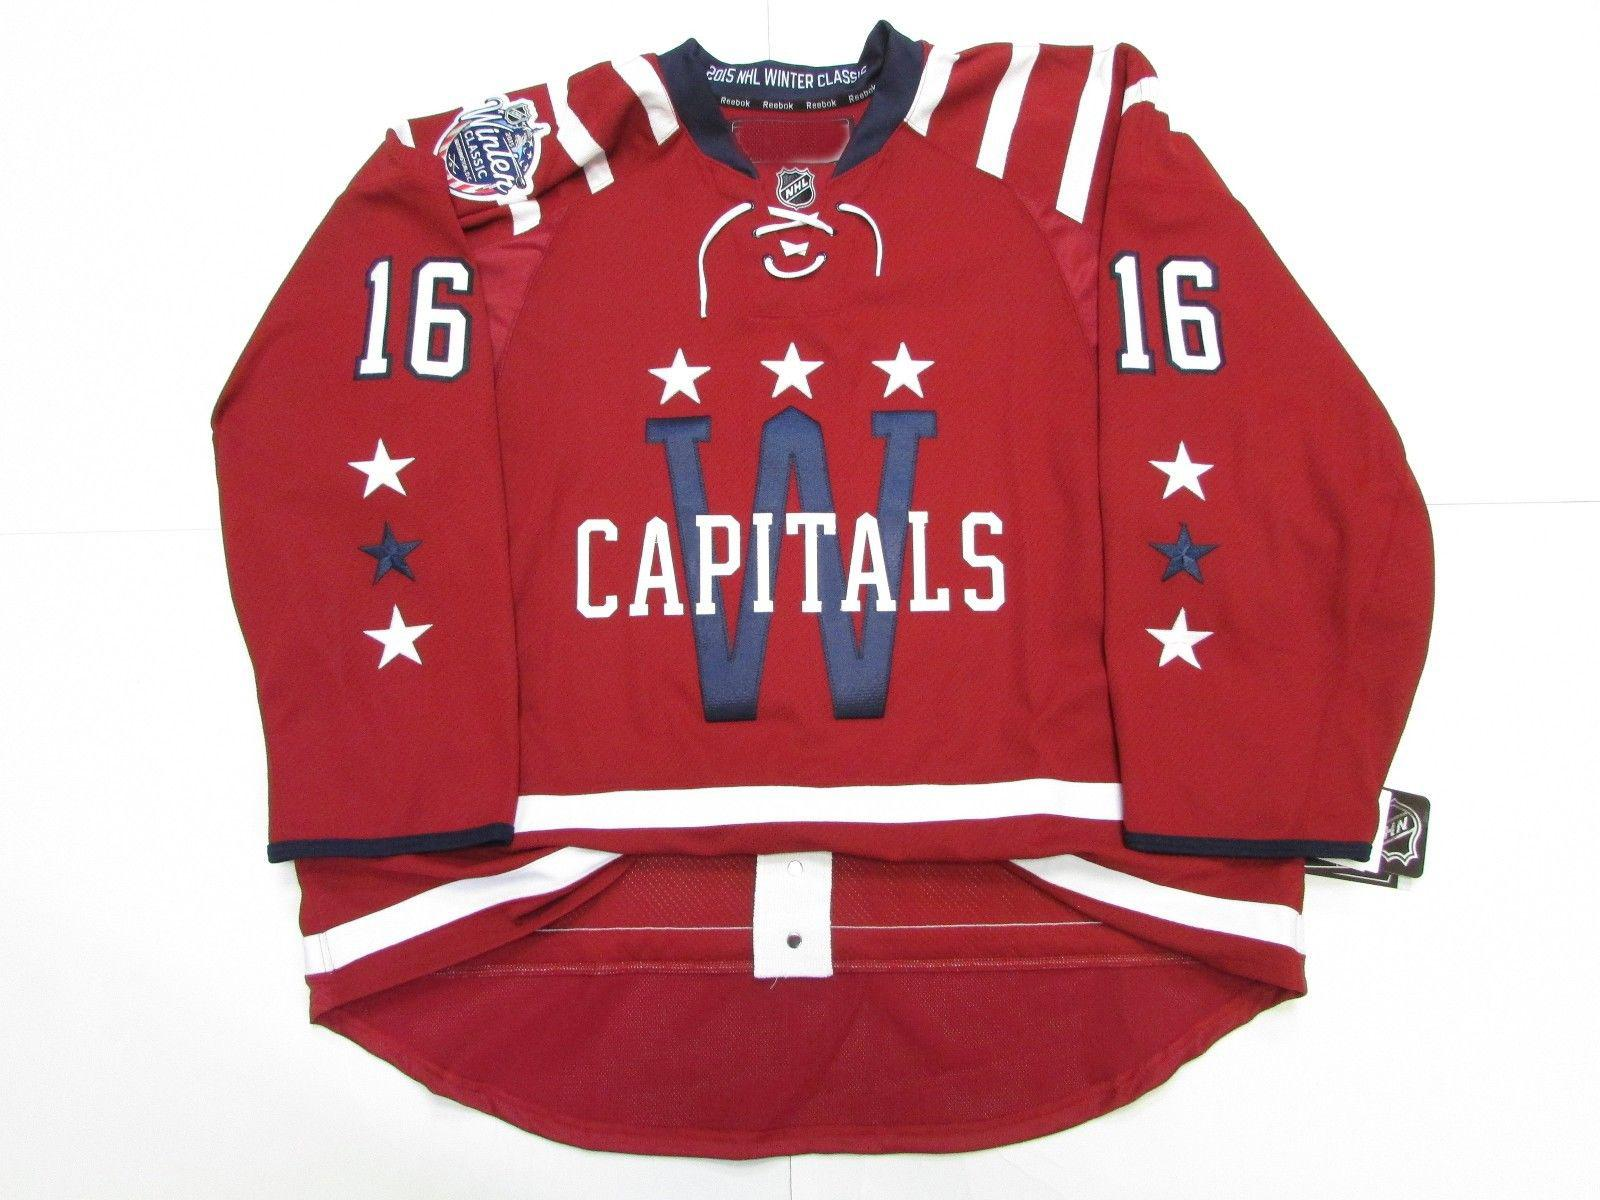 2019 Cheap Custom TRUMP  16 WASHINGTON CAPITALS 2015 WINTER CLASSIC JERSEY  Stitch Add Any Number Any Name Mens Hockey Jersey XS 5XL From  Dc superstore e1a660087c7